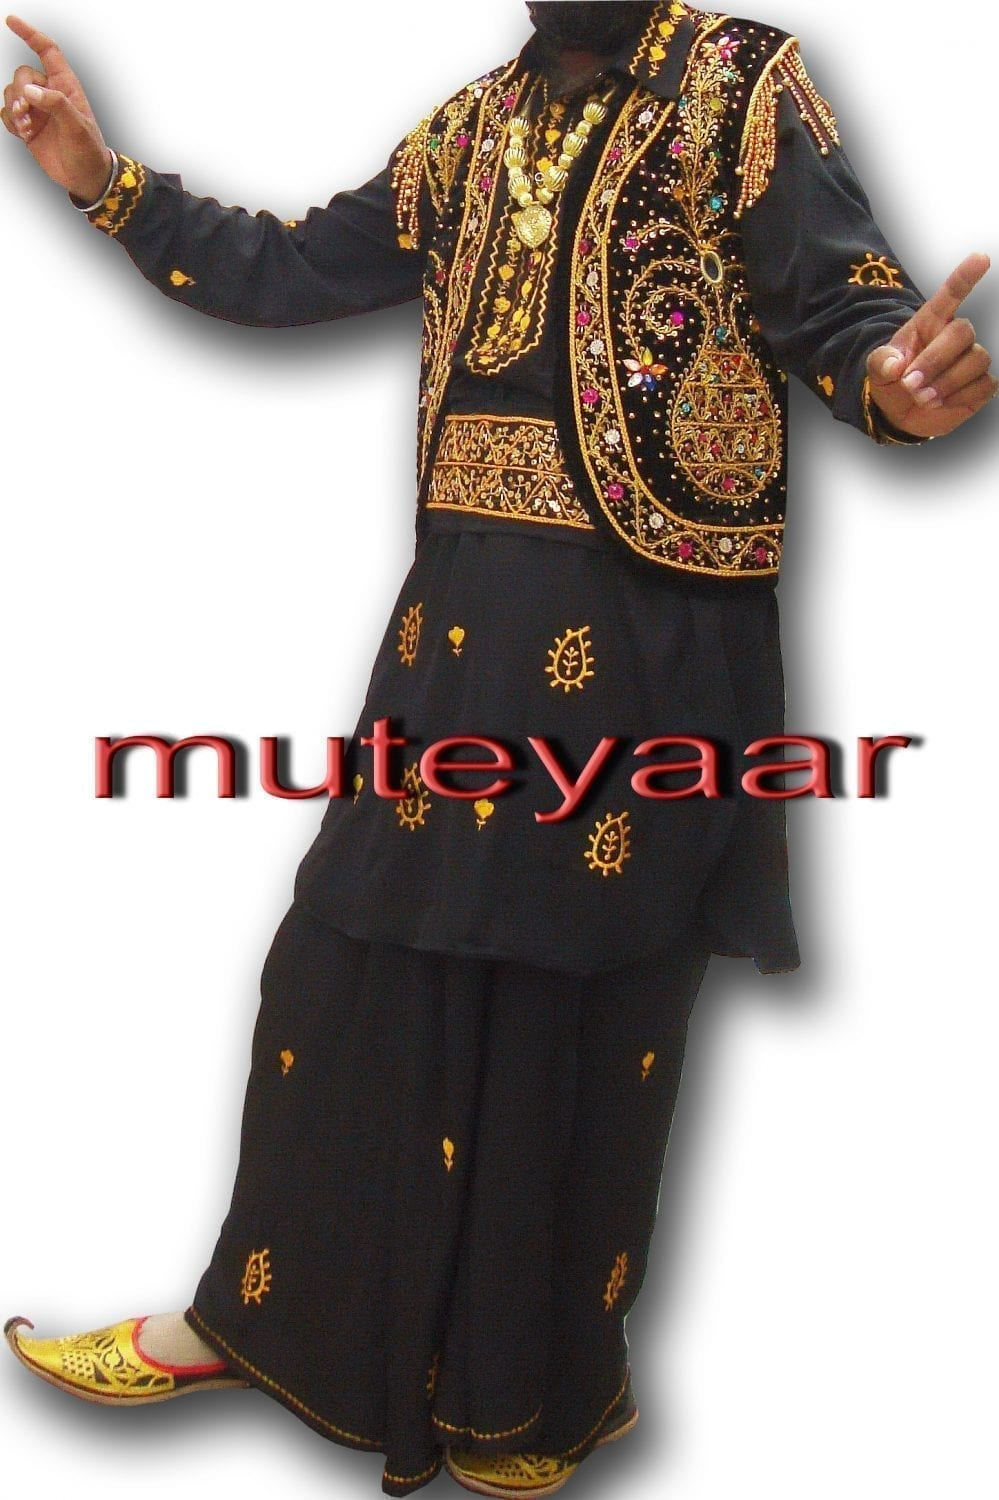 Punjabi Bhangra dance Costume / outfit - ready to wear 1